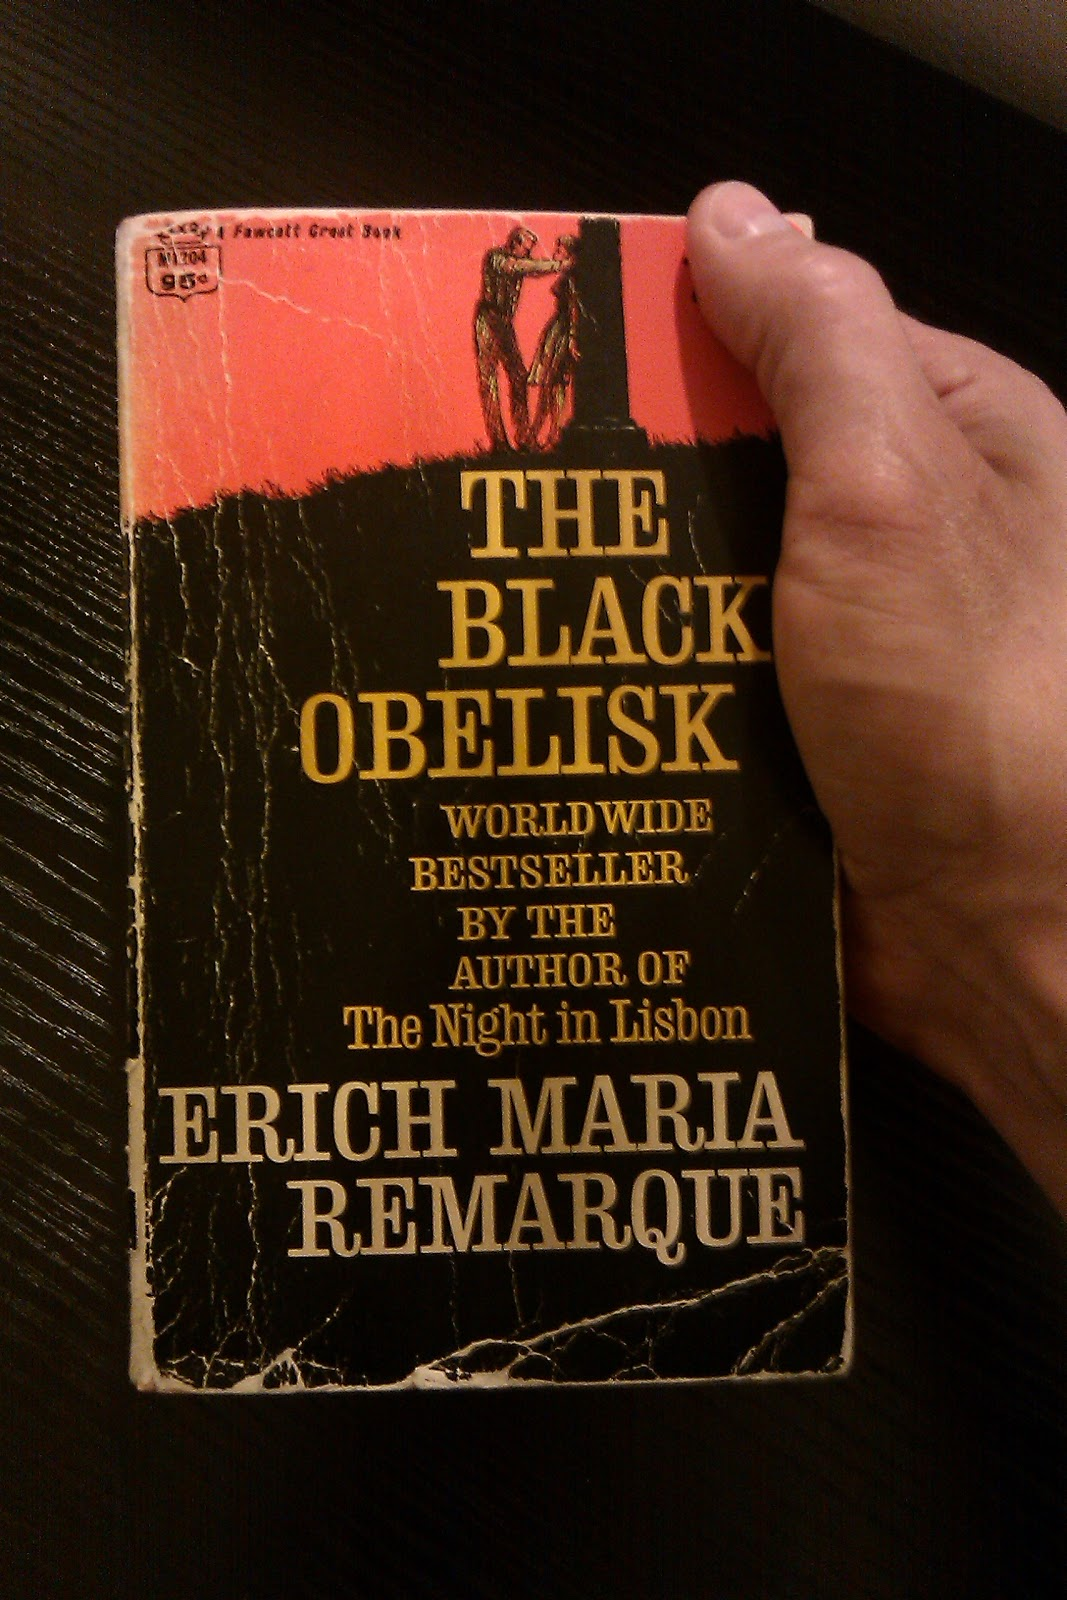 erich maria remarque s works as representations A brief commentary prepared by patrick thomas, phd, assistant professor, english, on the following work: erich maria remarque im westen nichts neues (all quiet on the western front)1928 and.